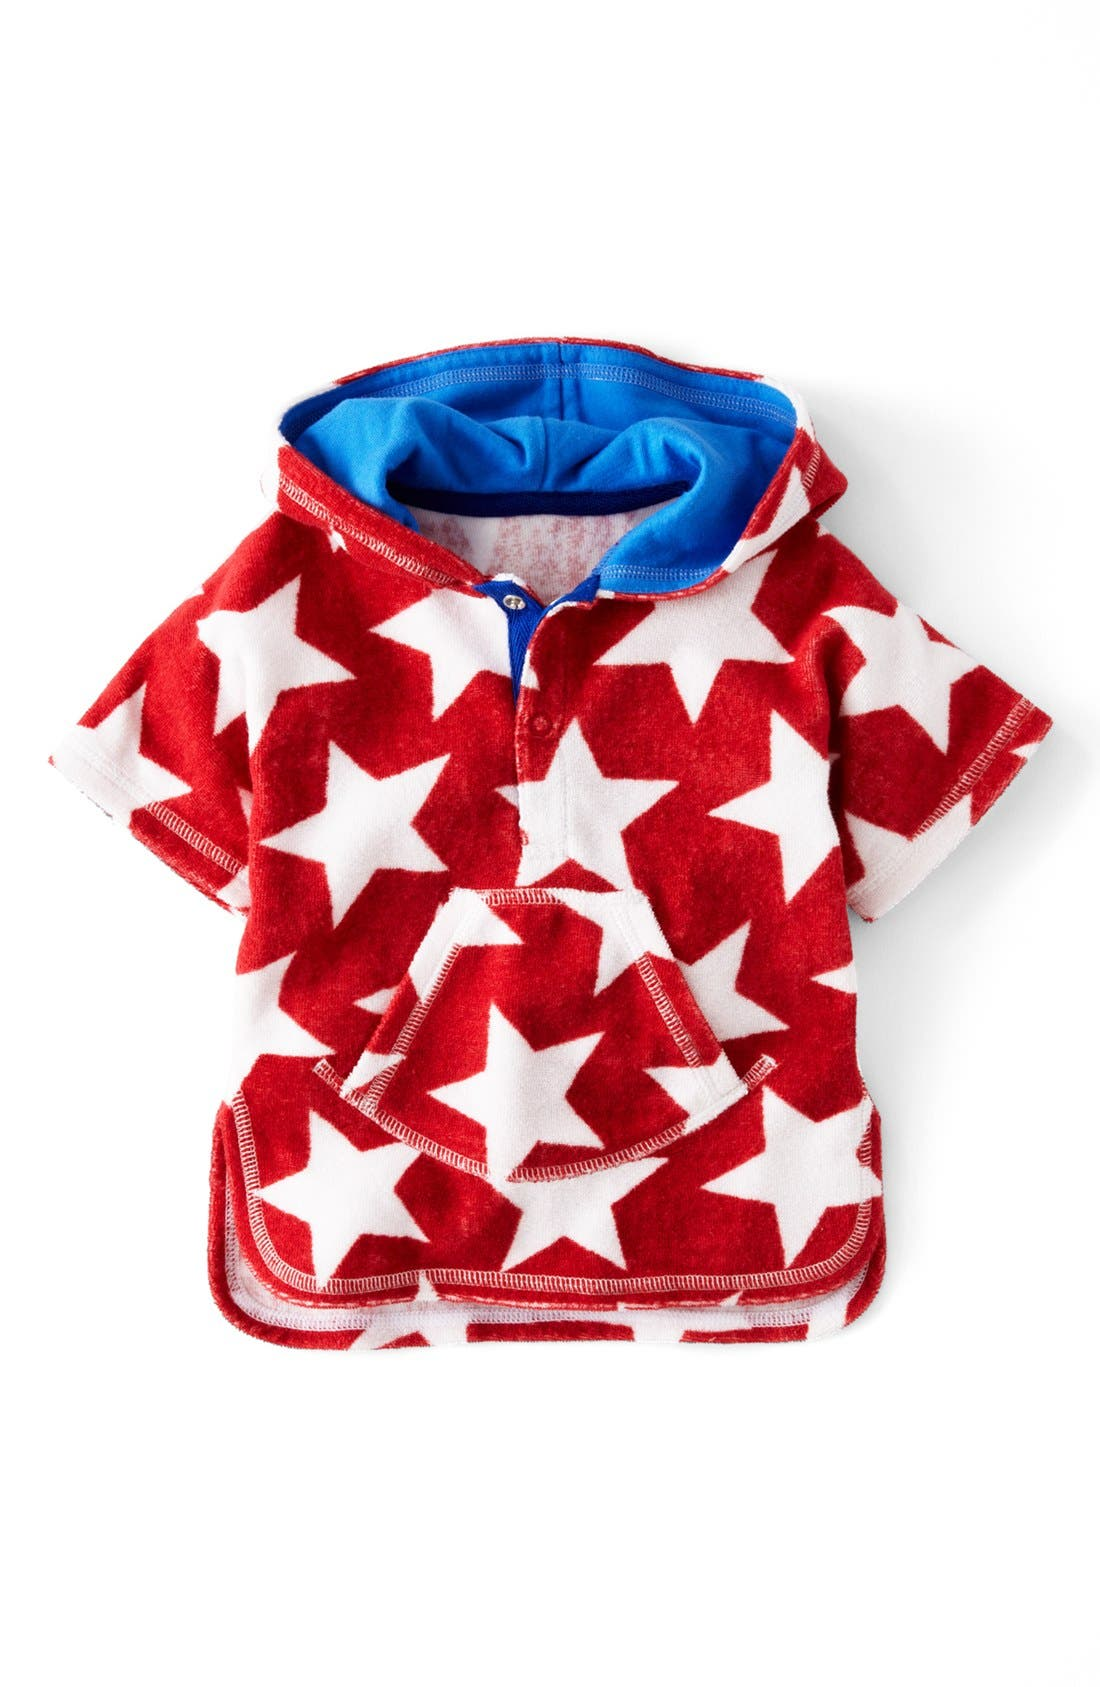 Main Image - Mini Boden 'Towelling' Poncho (Baby)